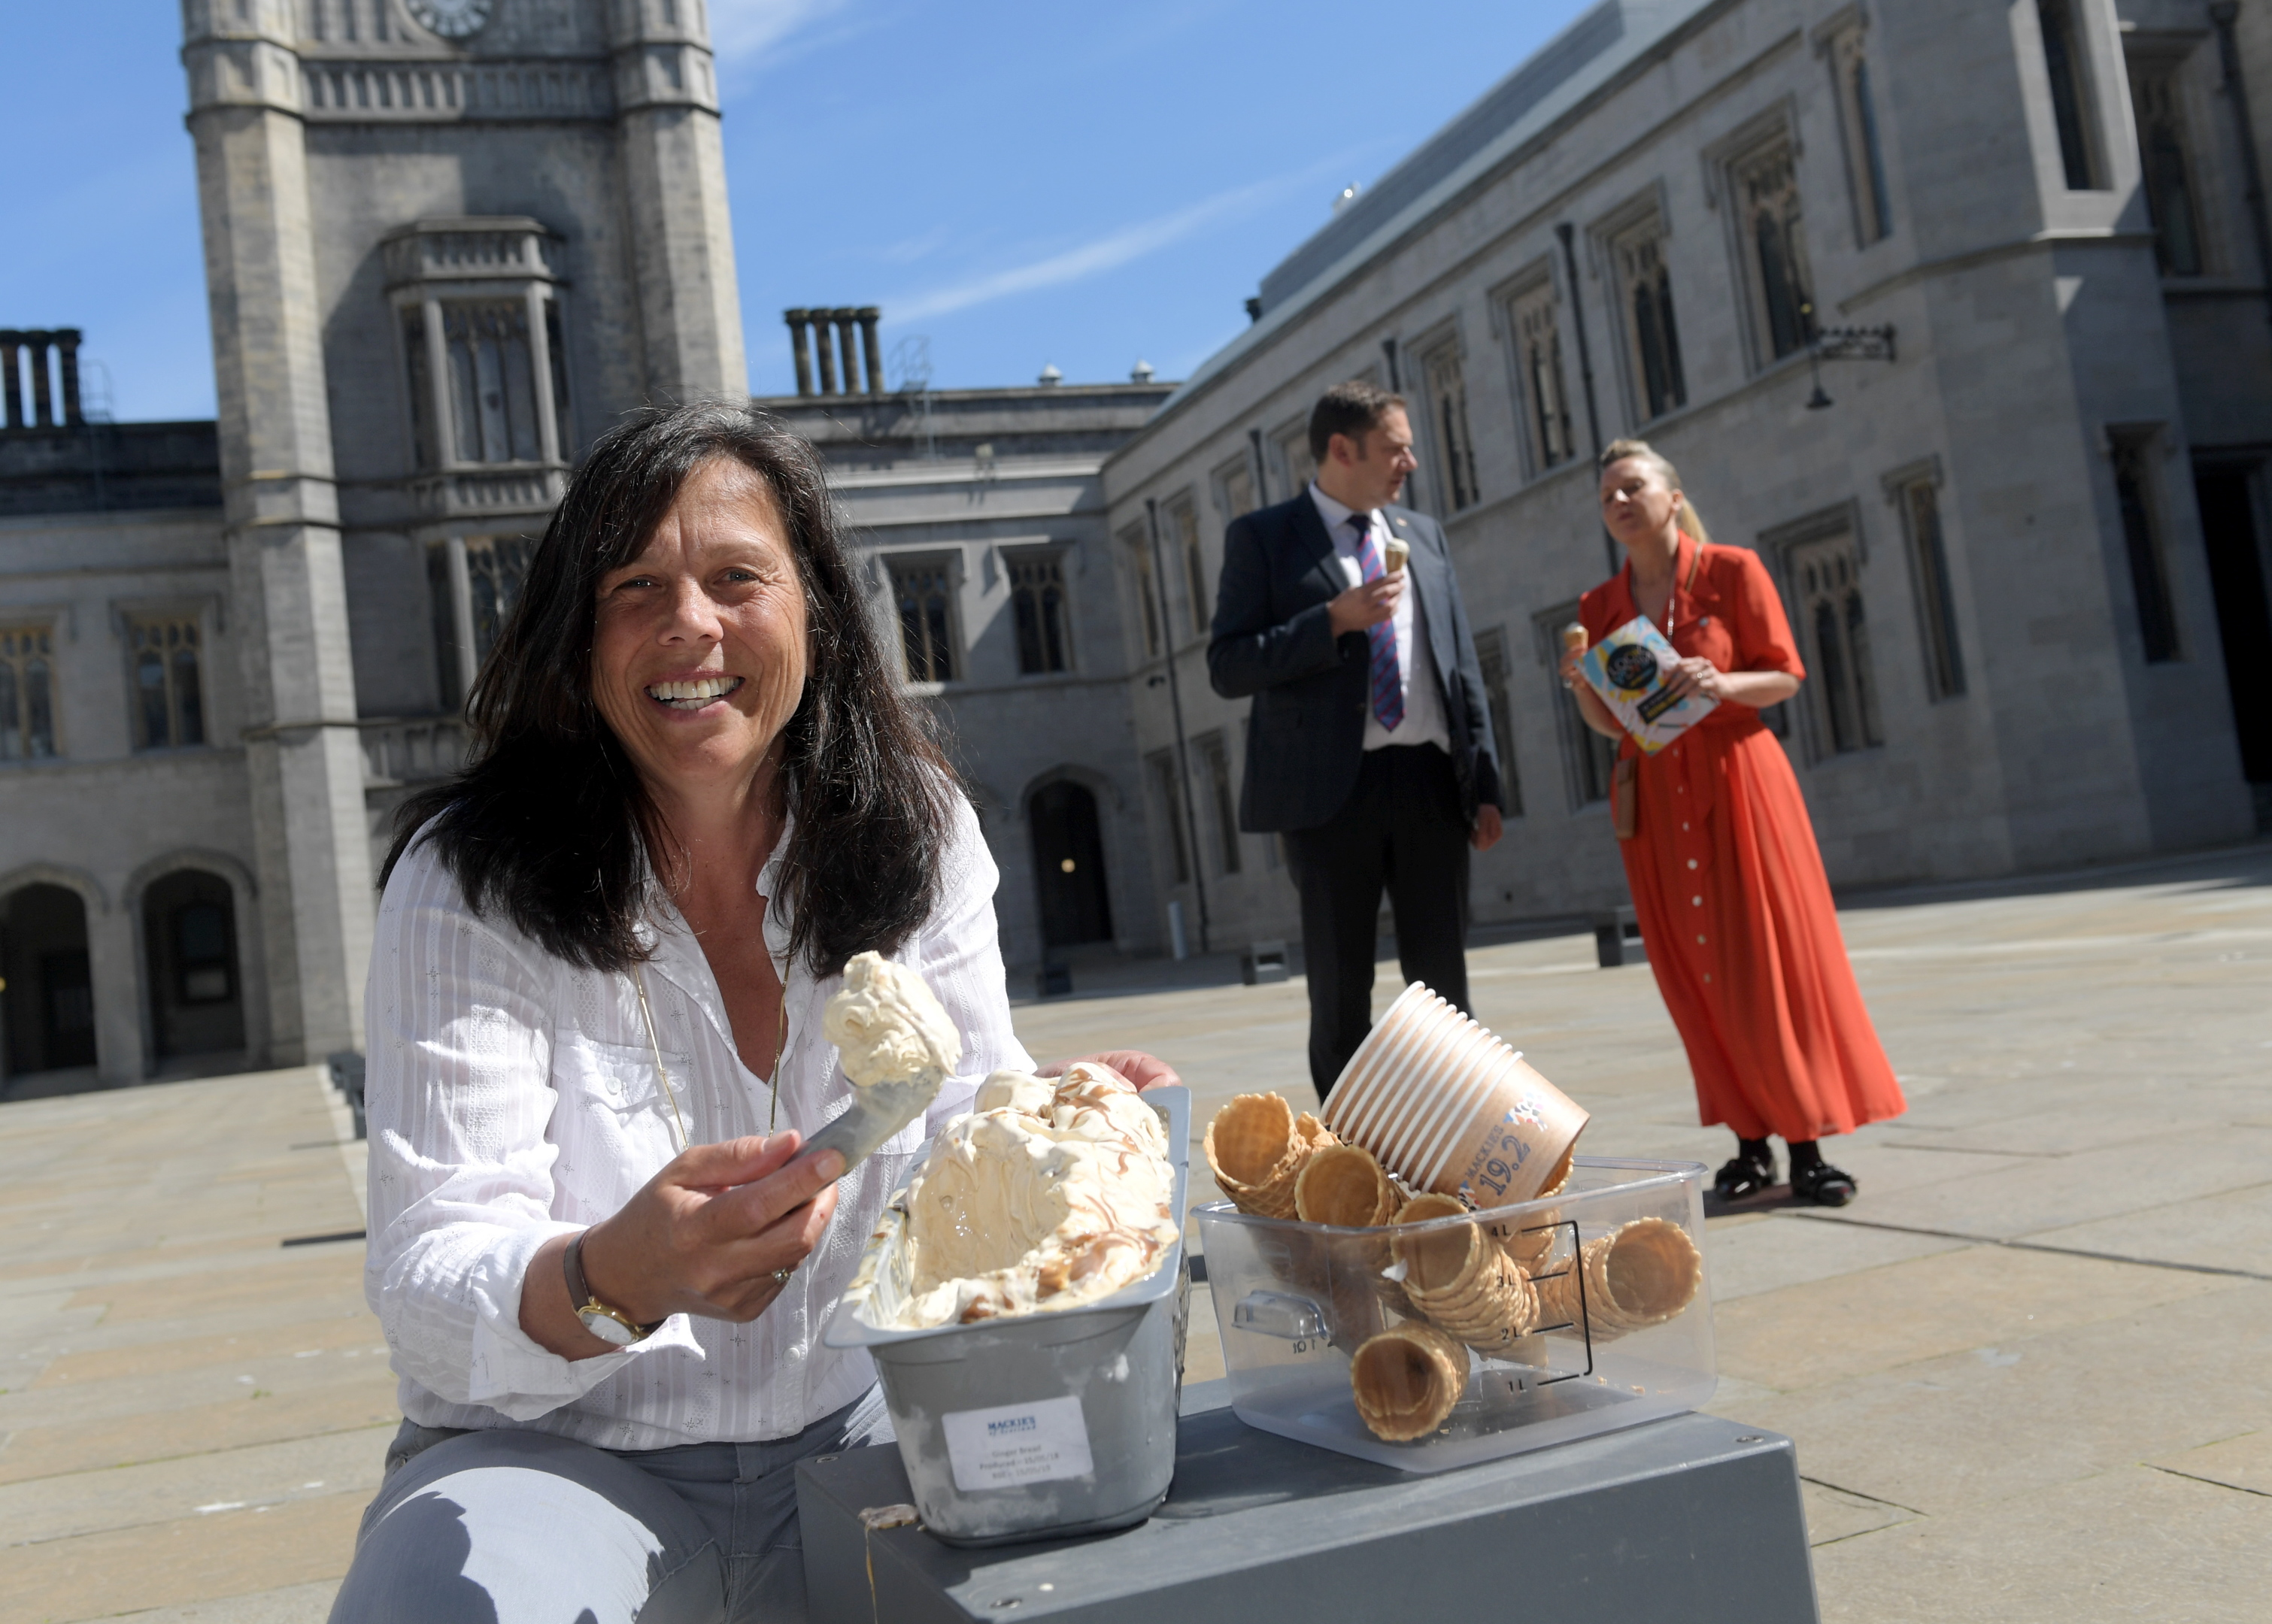 The festival has teamed up with Mackie's who will launch a brand new flavour of ice-cream to be dished out at one of the Look Again installations.